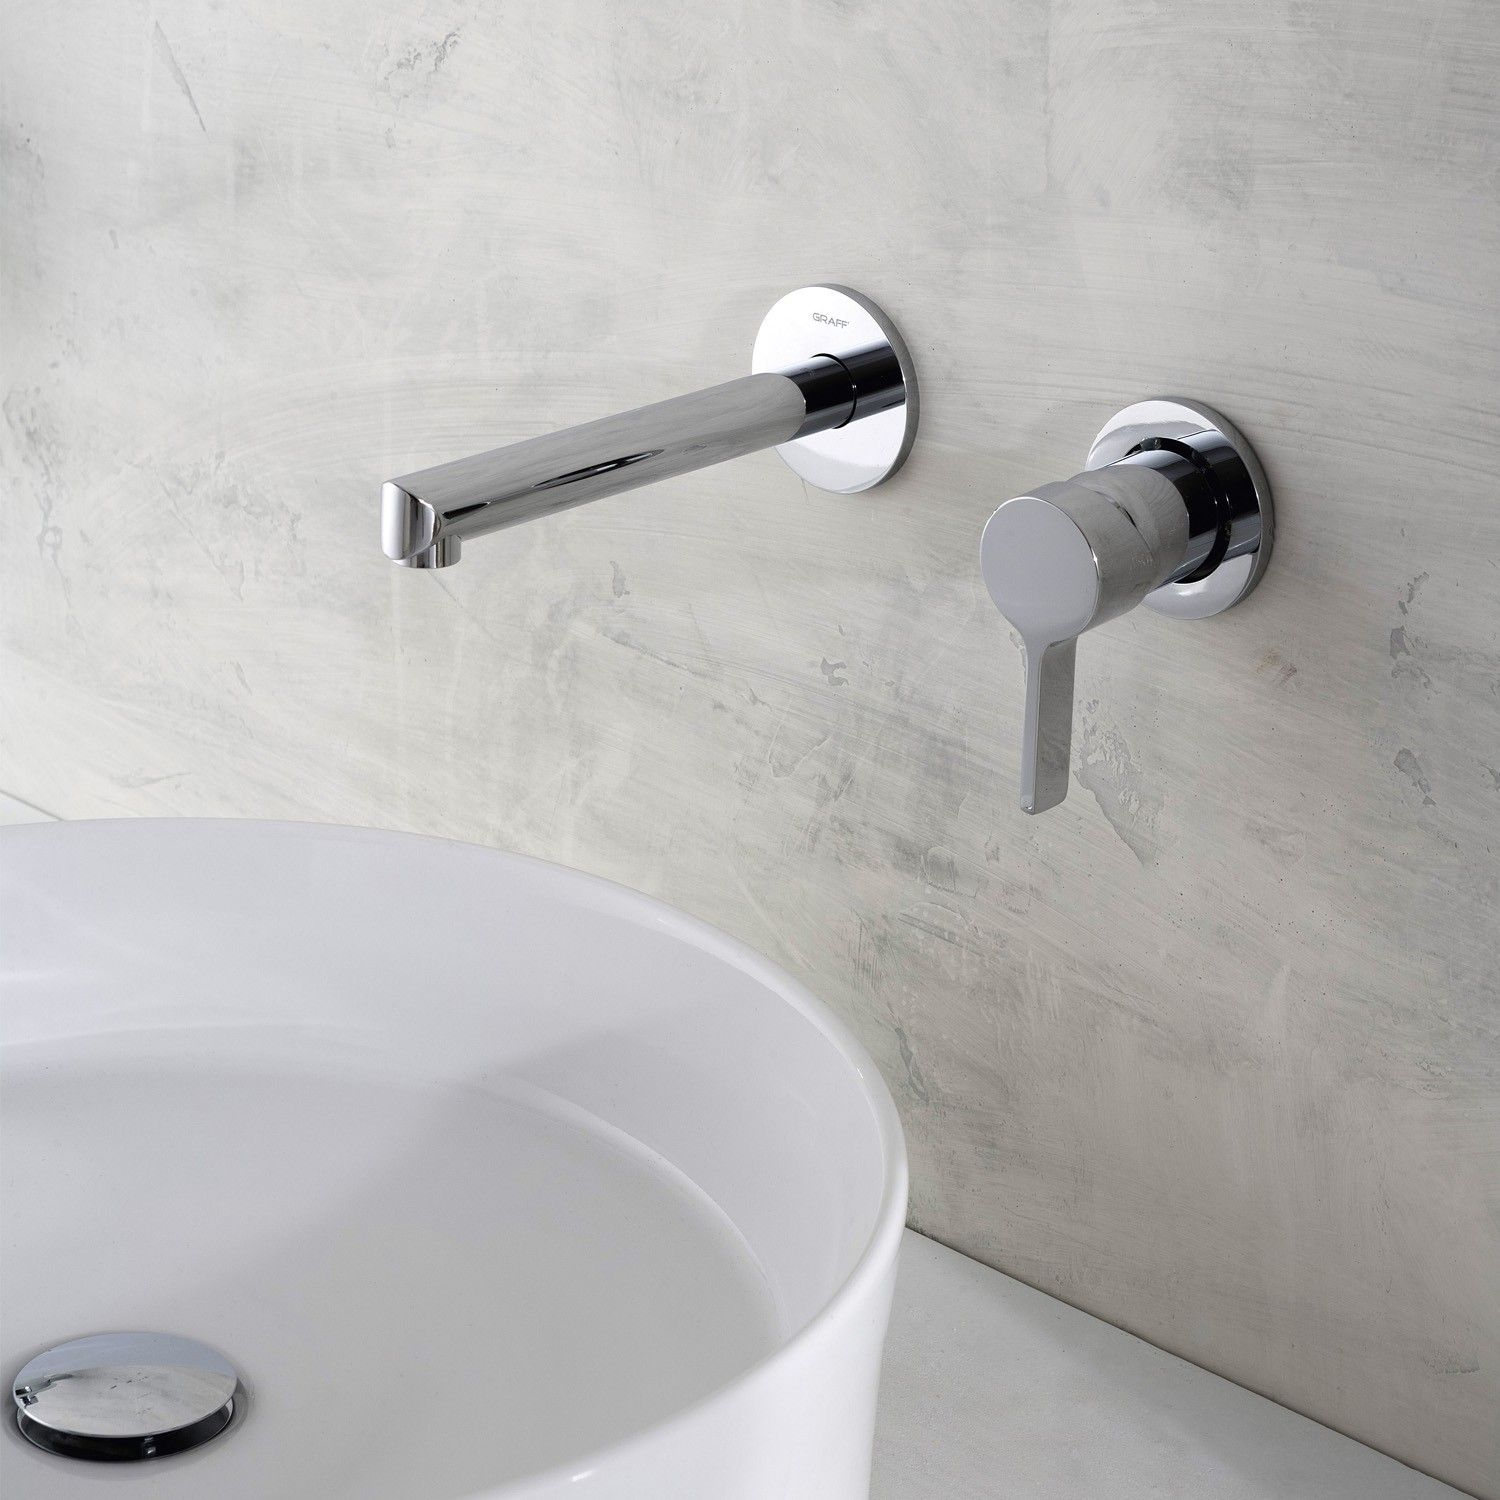 Terra Wall-Mounted Faucet | Wall mount faucet, Faucet and Save water